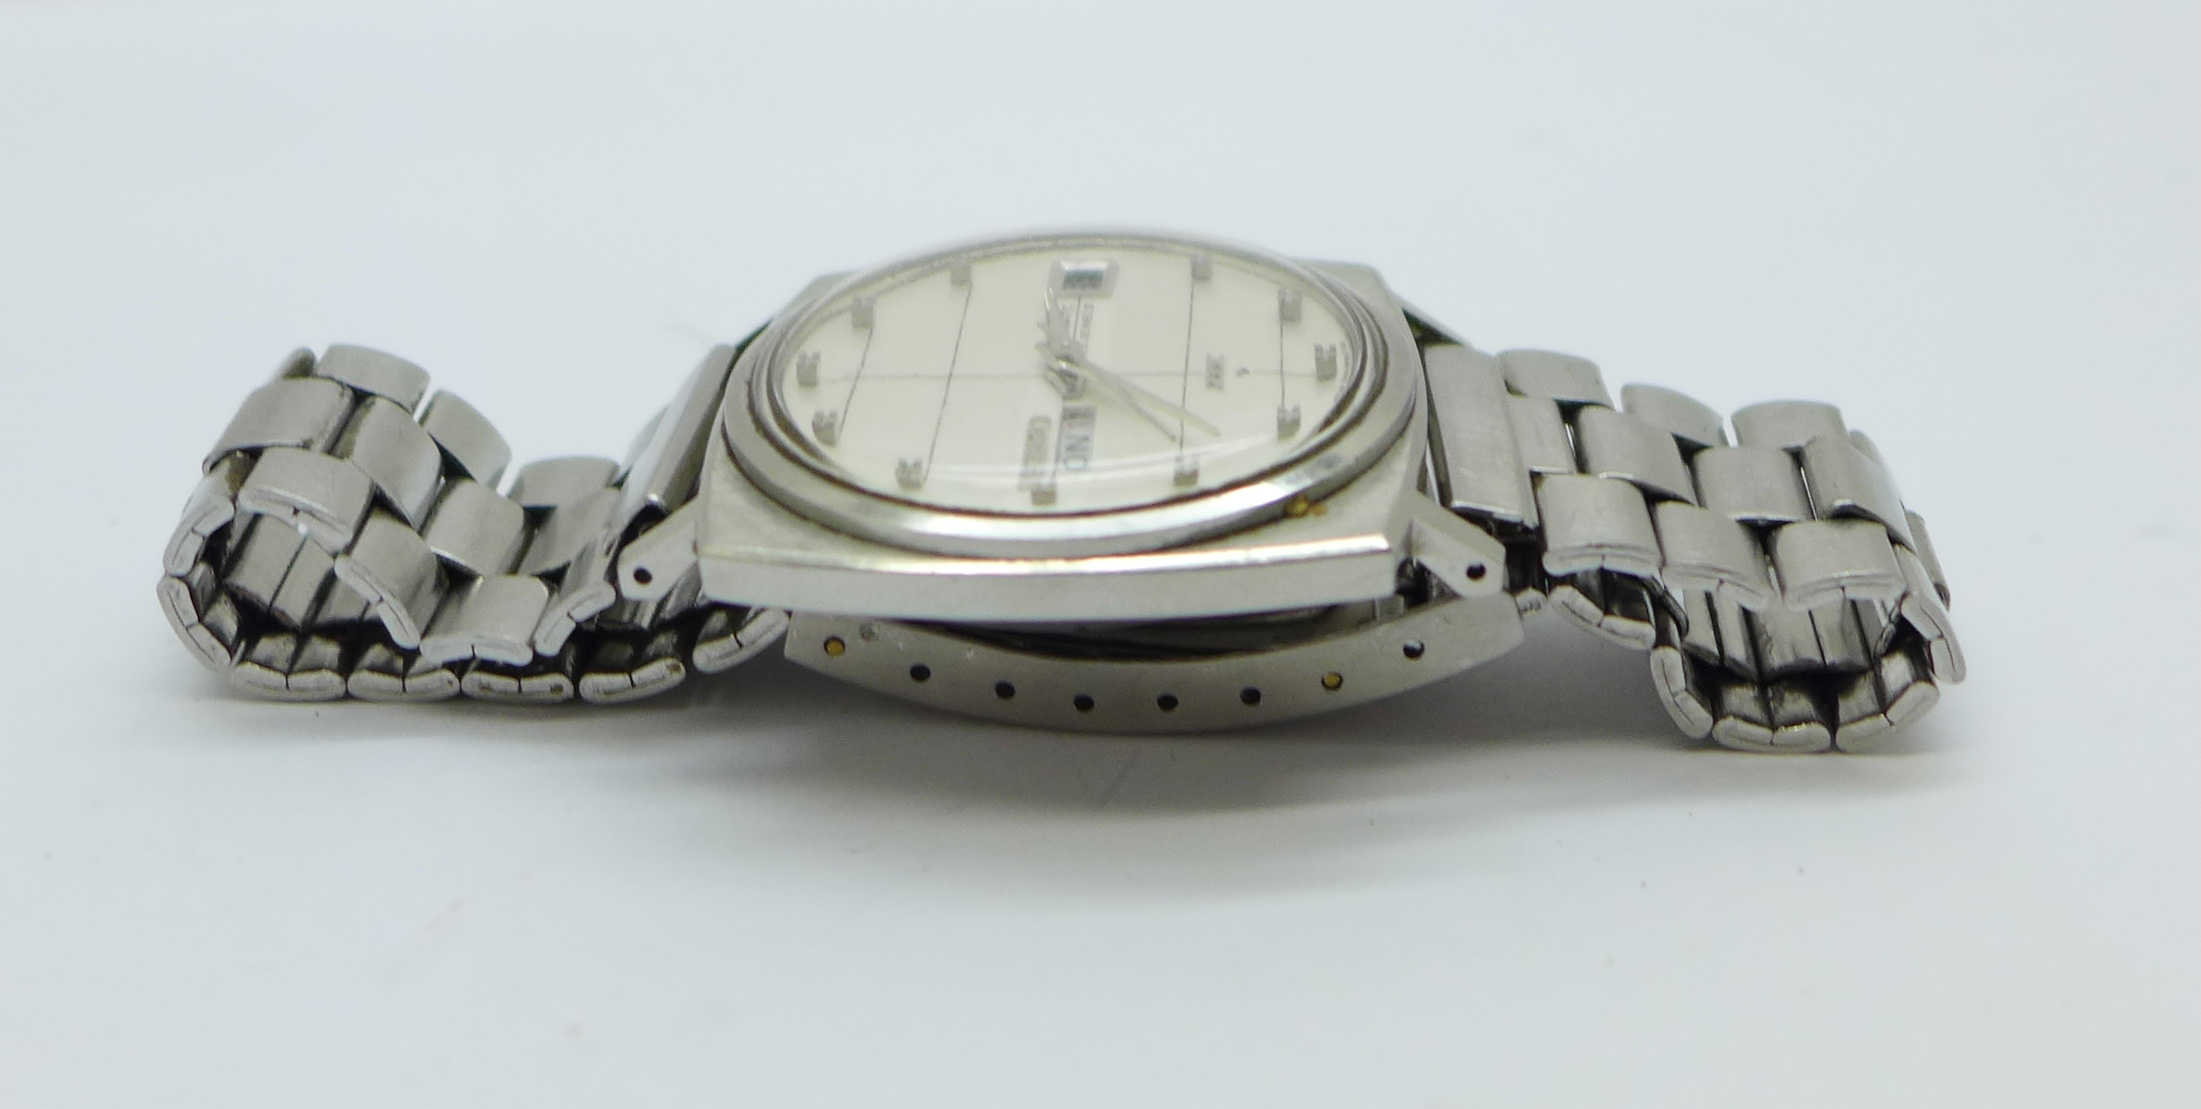 A Seiko DX Sea Lion automatic wristwatch, with day and date - Image 3 of 6